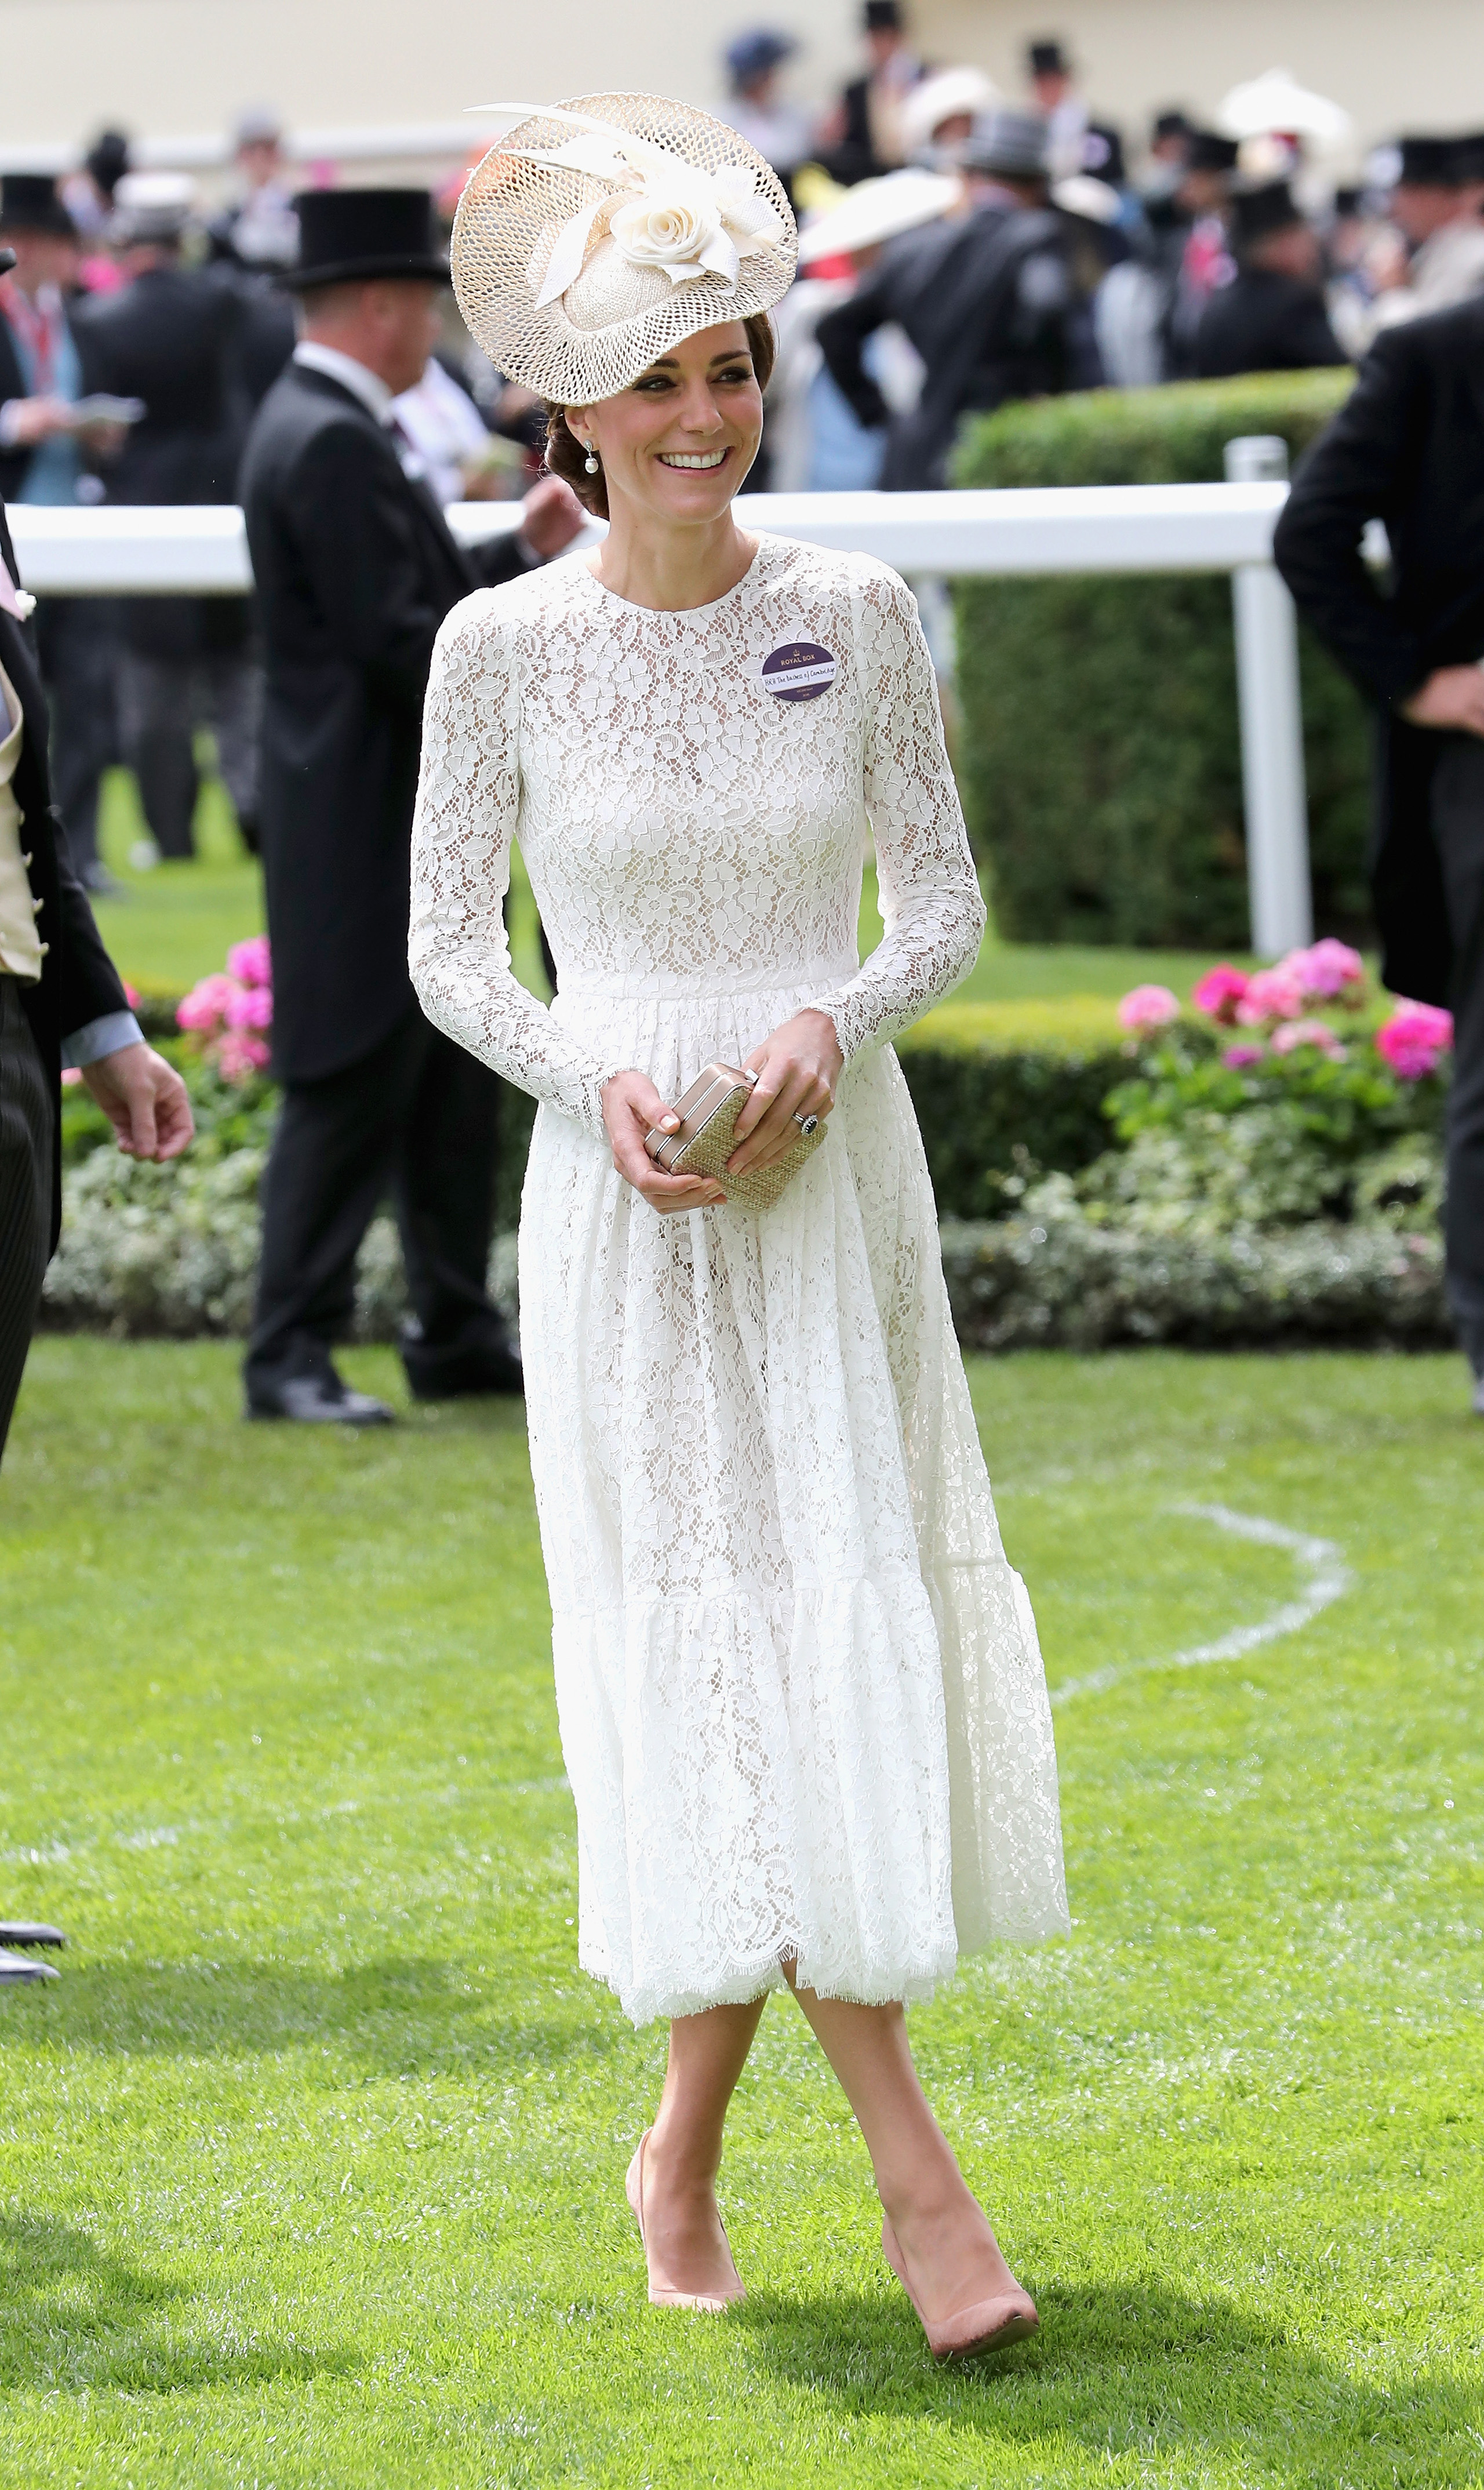 Catherine, Duchess of Cambridge, attends the second day of Royal Ascot at Ascot Racecourse in England on June 15, 2016.